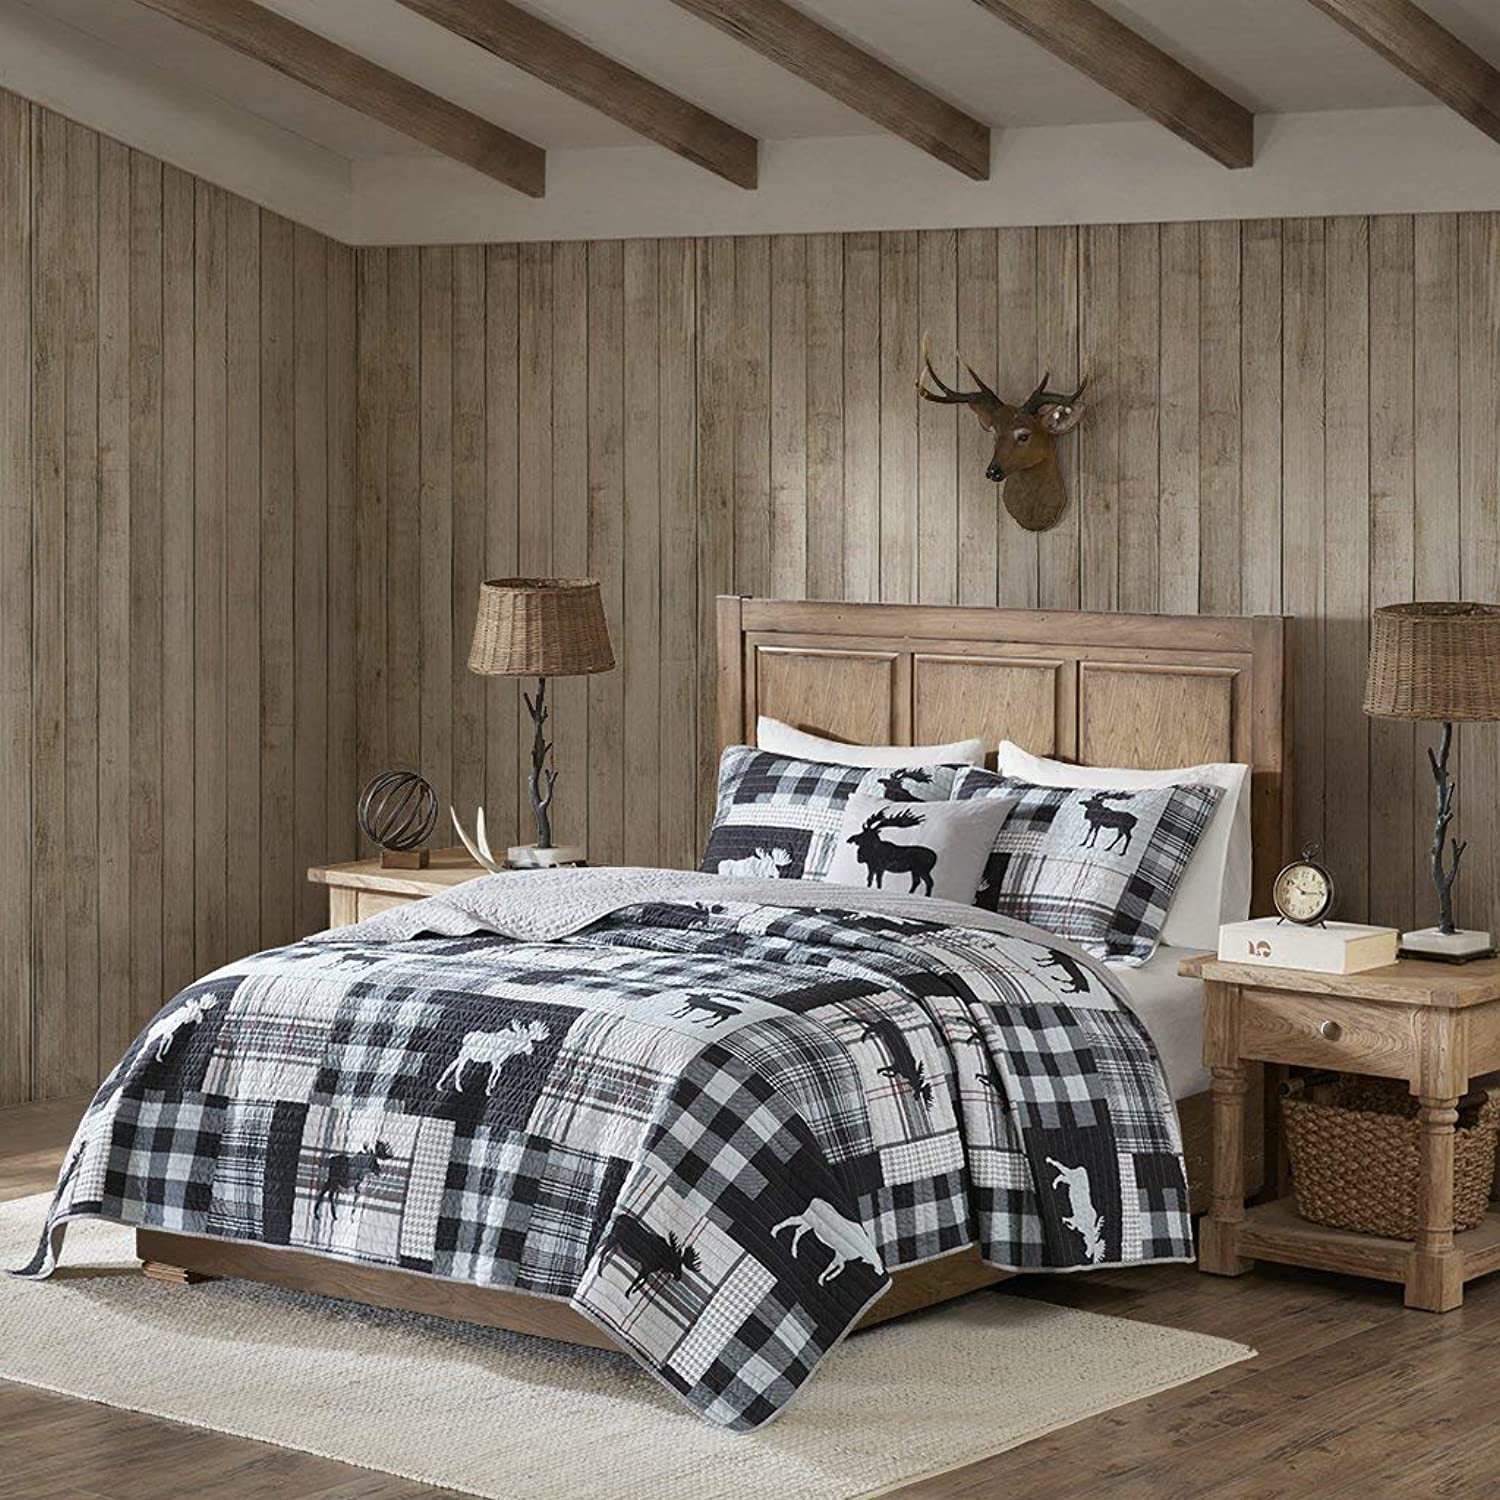 Woolrich Sweetwater Quilt Set, Black Grey